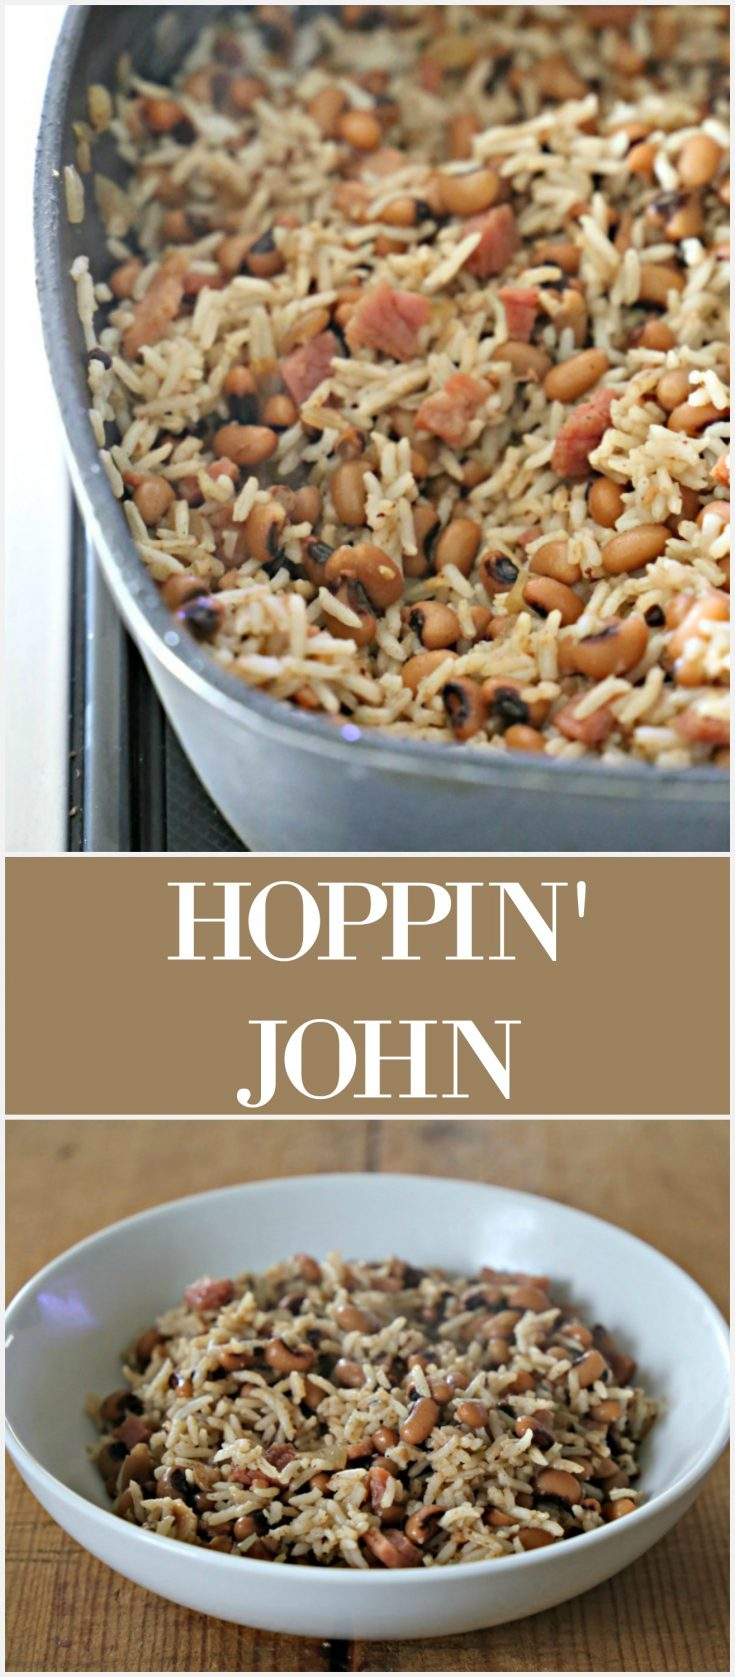 A blend of rice, black-eyed peas, ham and seasoning, this dish is a delicious way of ringing in the New Year.